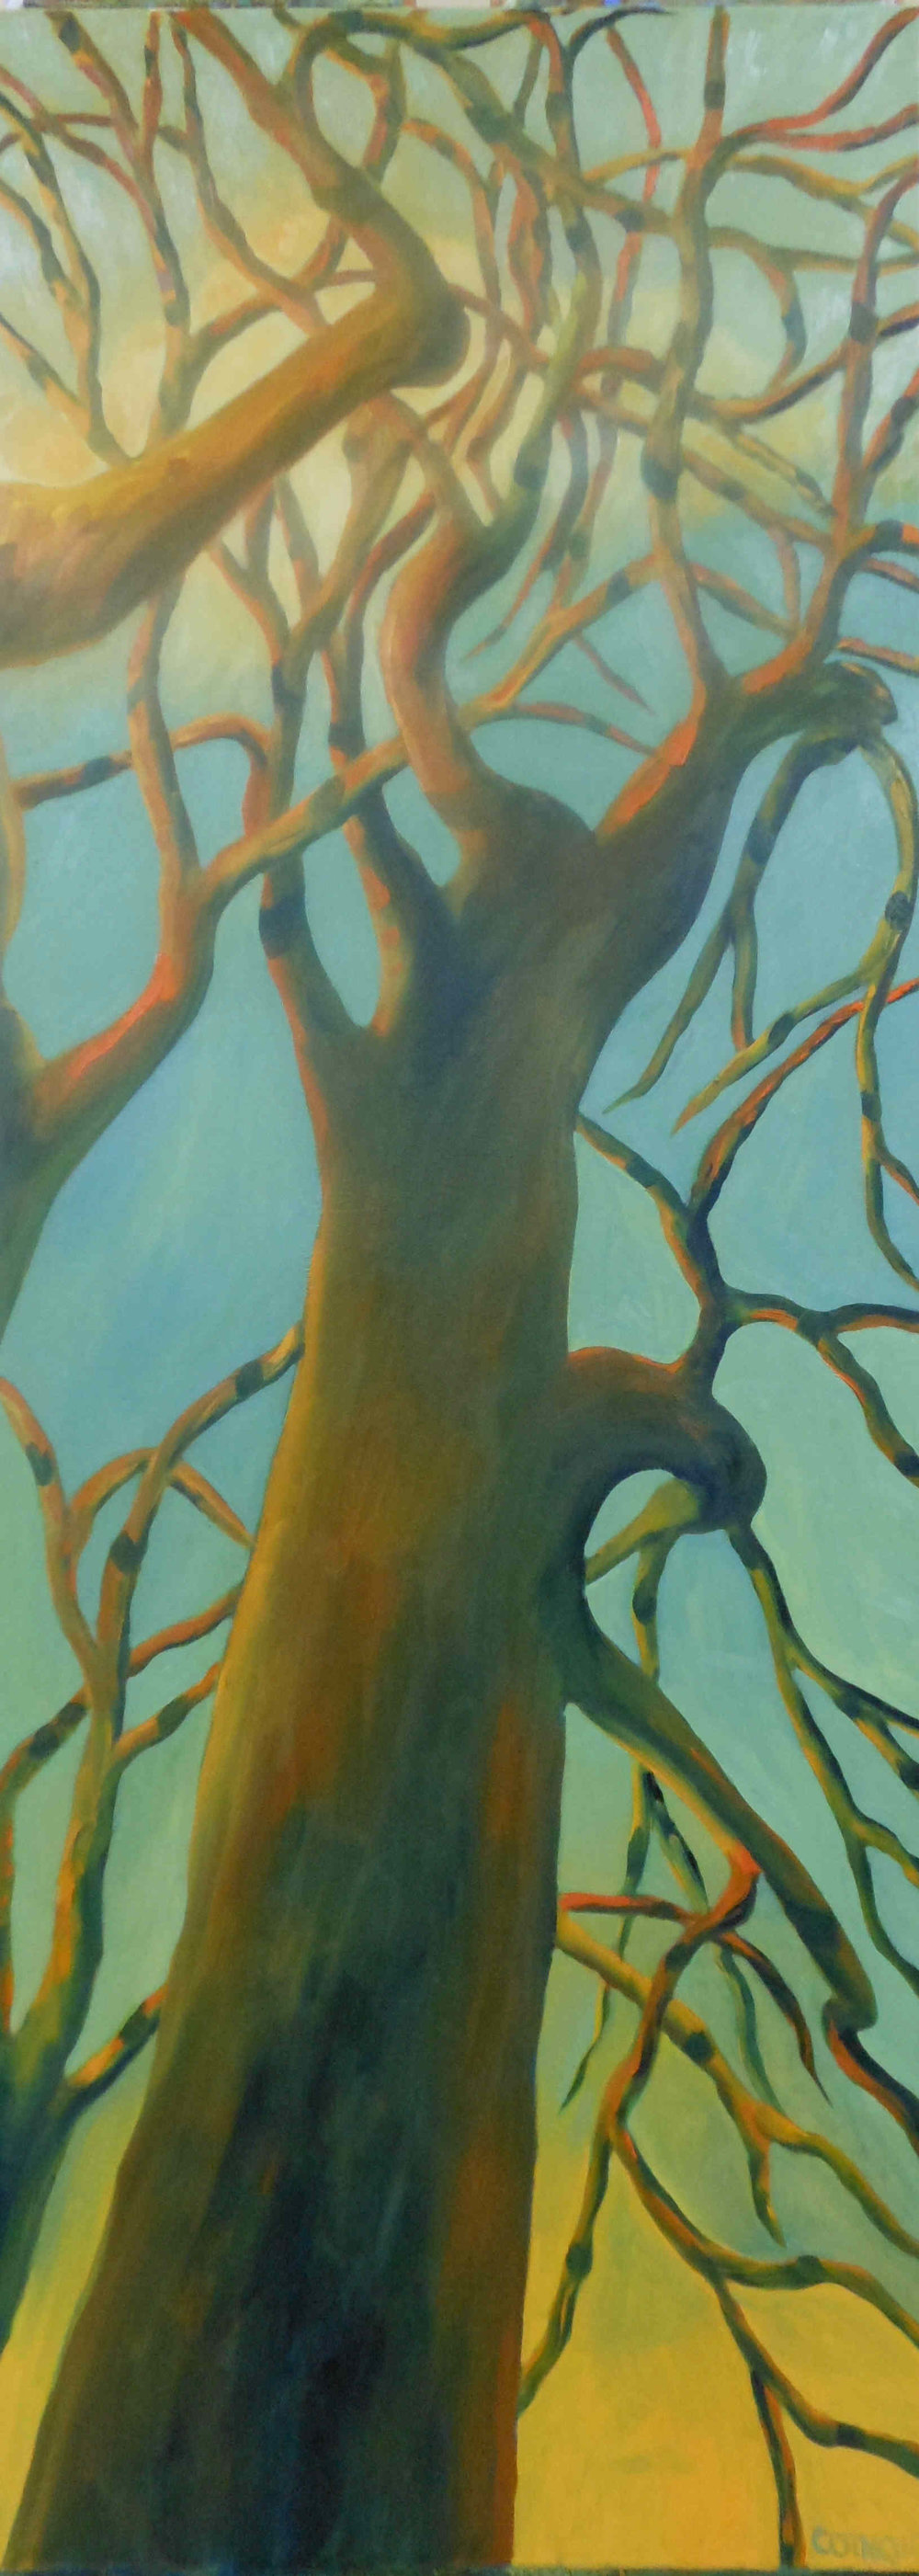 Shadow Trees in Orange and Green